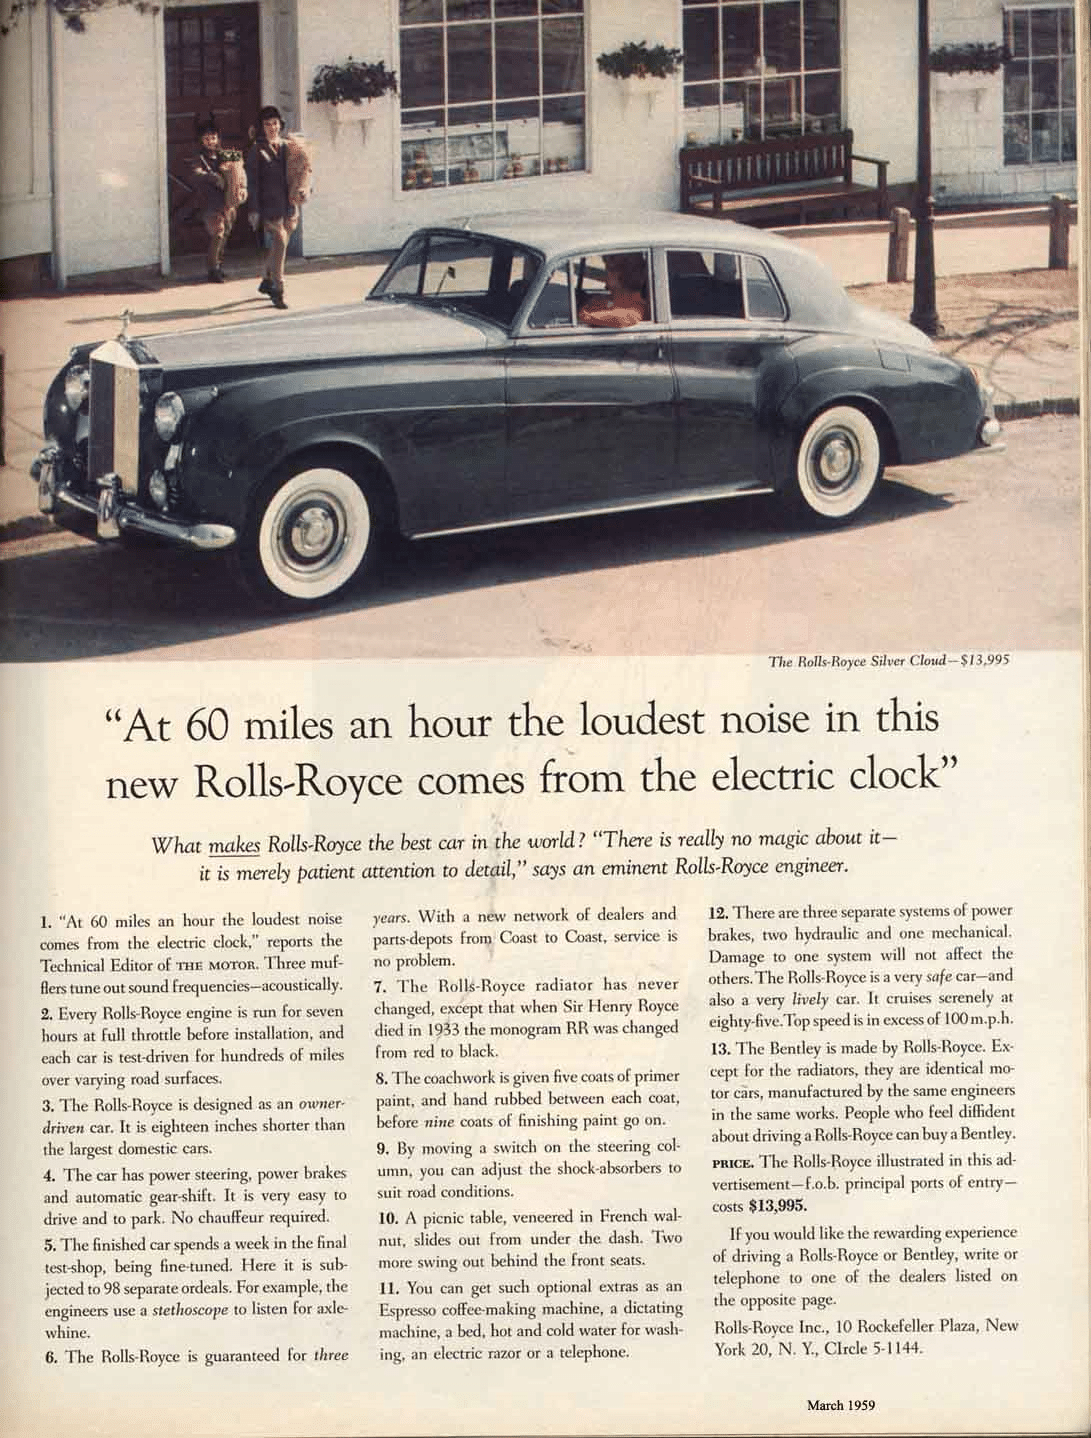 David Ogilvy Rolls-Royce